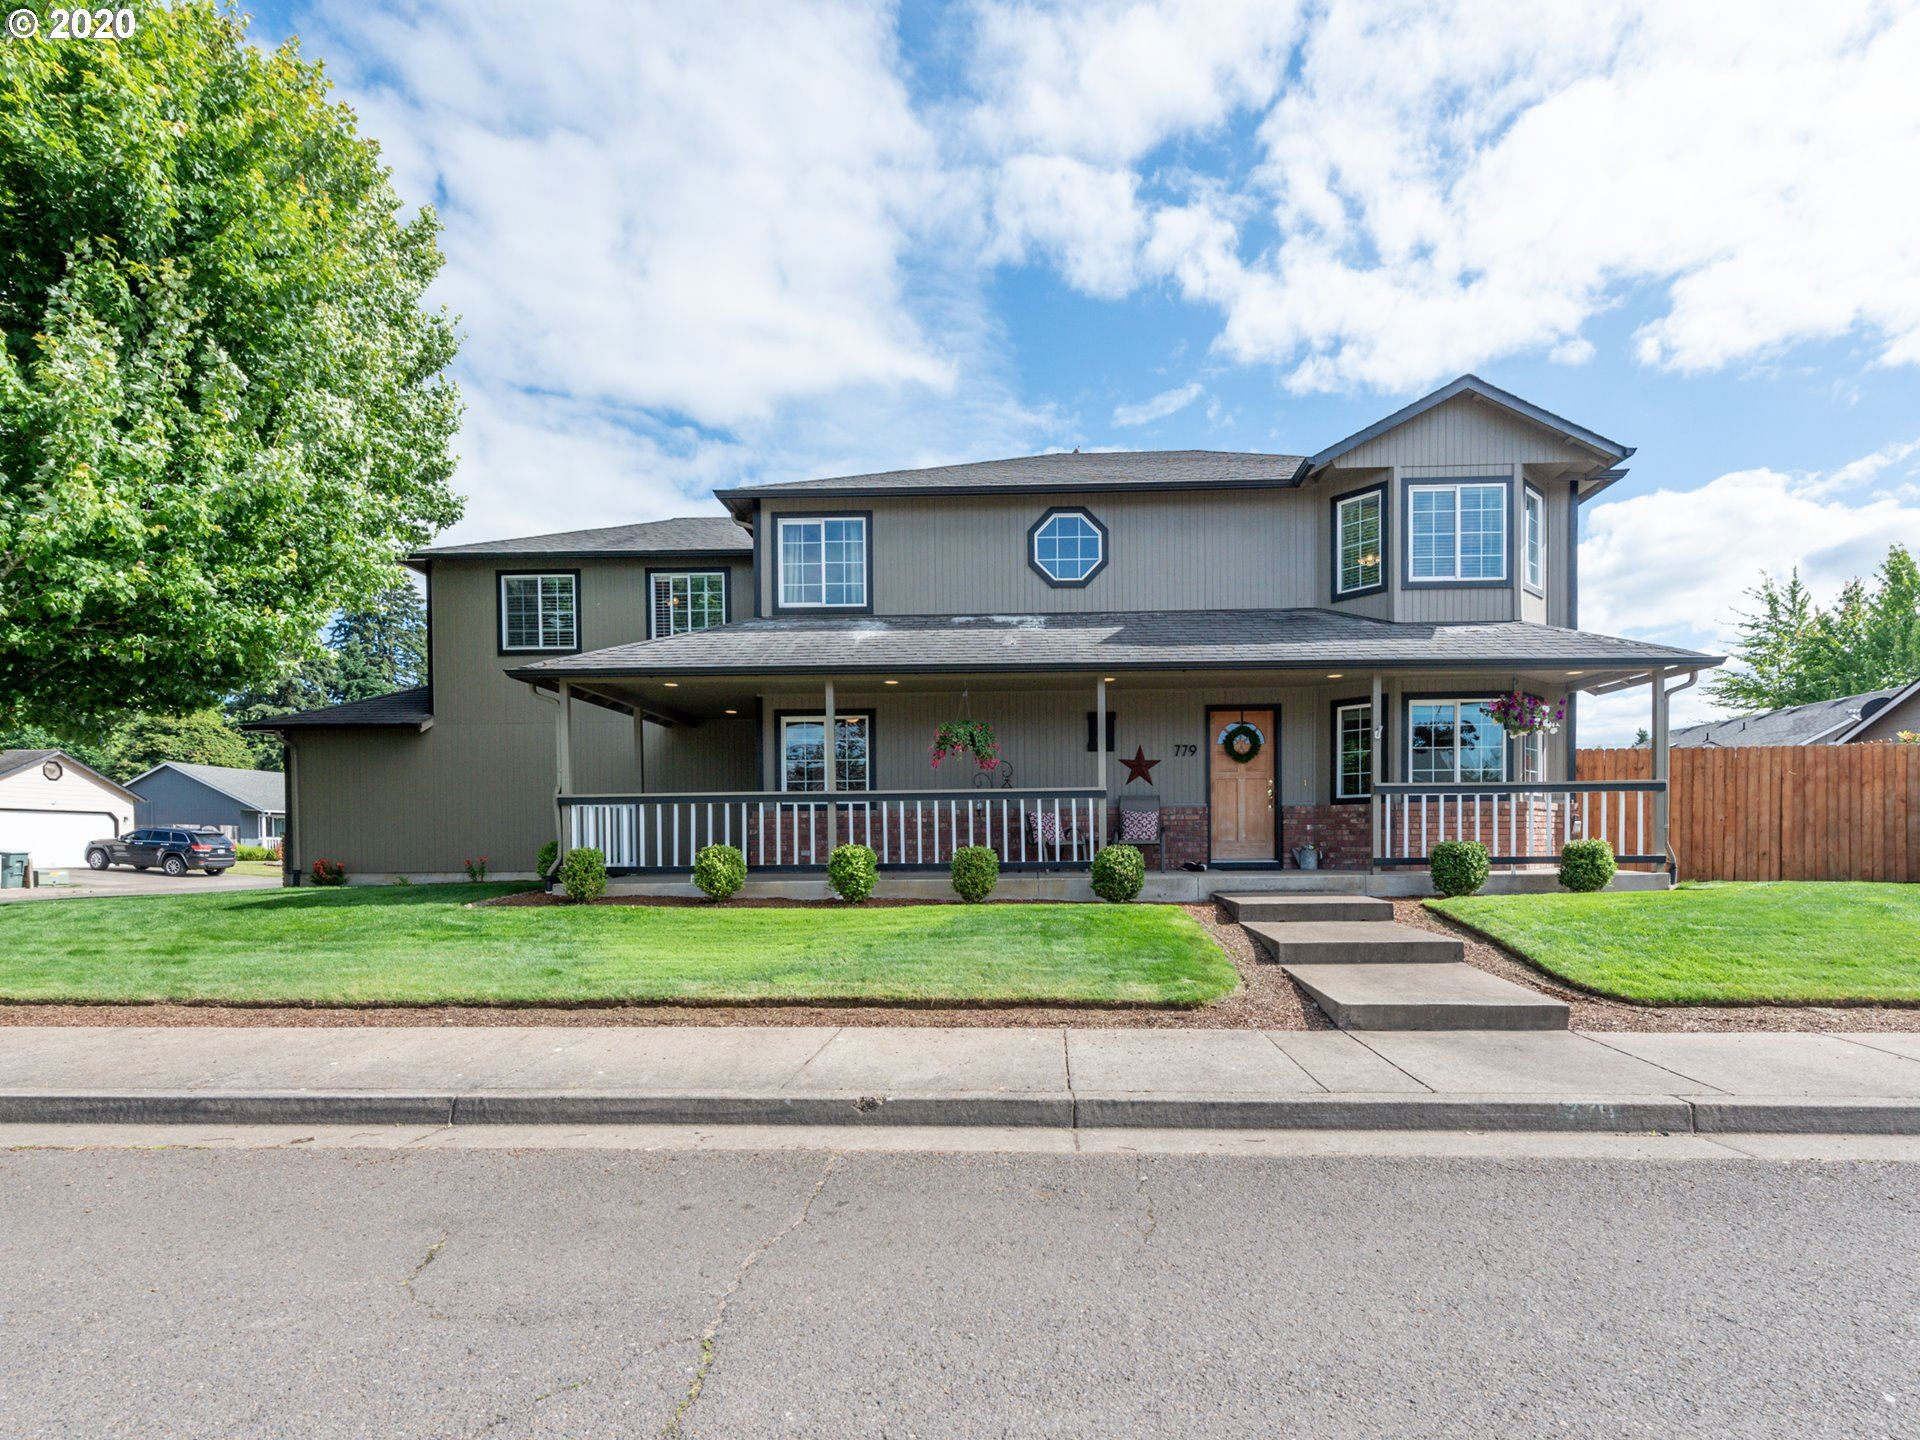 Photo for 779 BLUE JAY LOOP, Creswell, OR 97426 (MLS # 20656759)